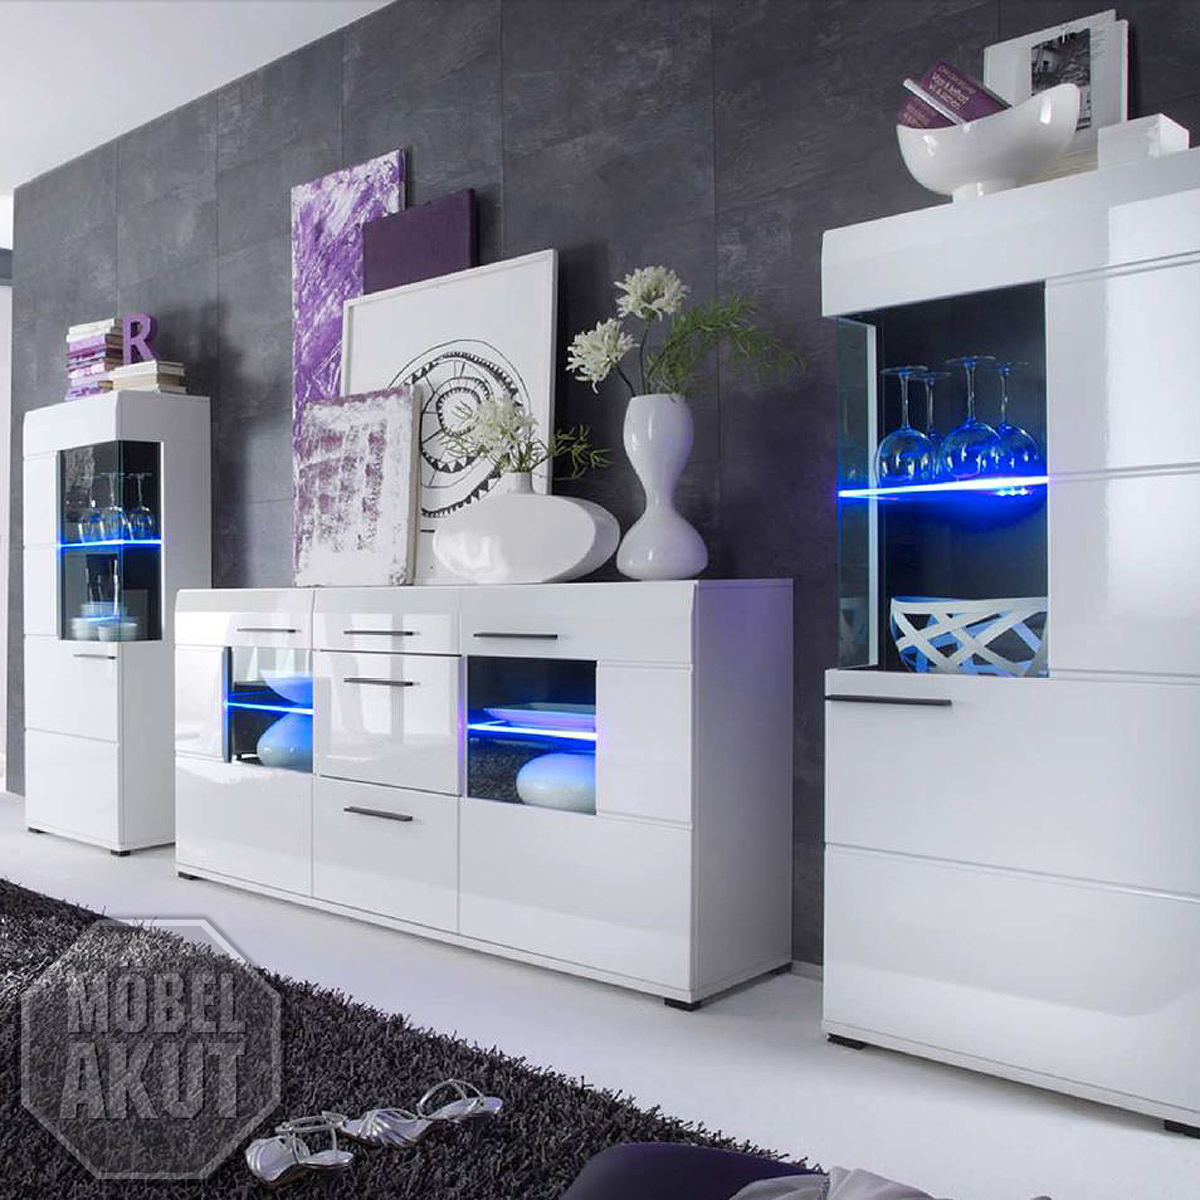 wohnwand lounge anbauwand sideboard vitrine wei hochglanz ebay. Black Bedroom Furniture Sets. Home Design Ideas